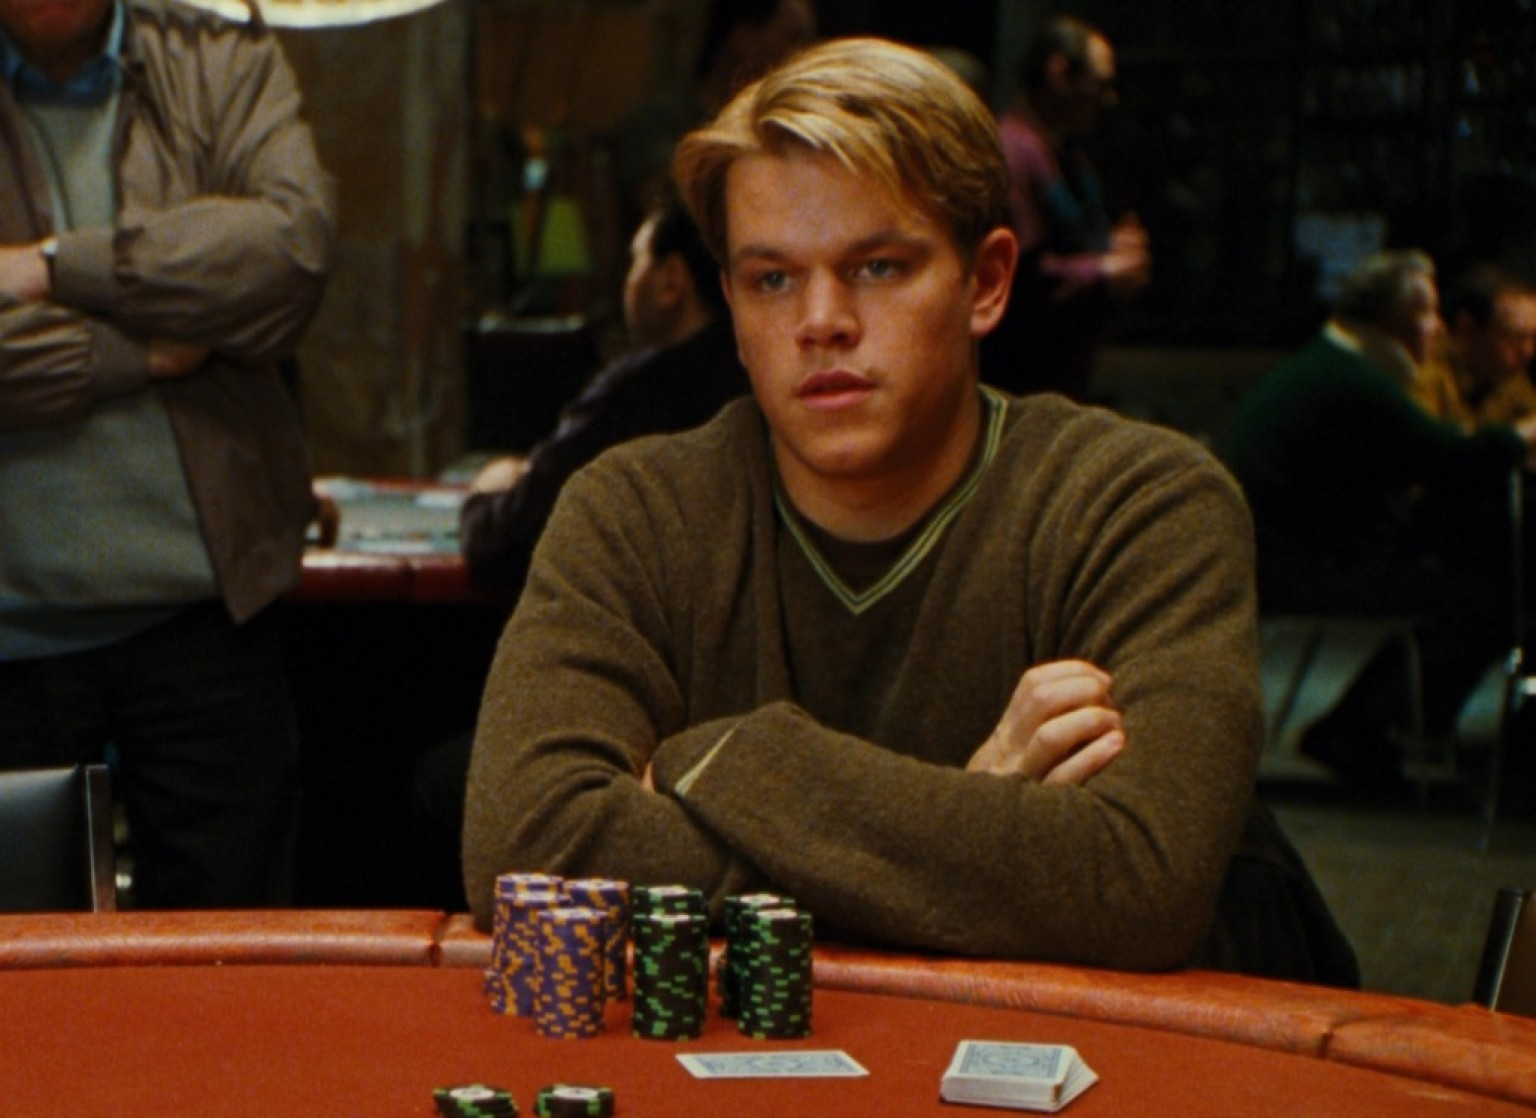 Matt Damon Rounders Poker